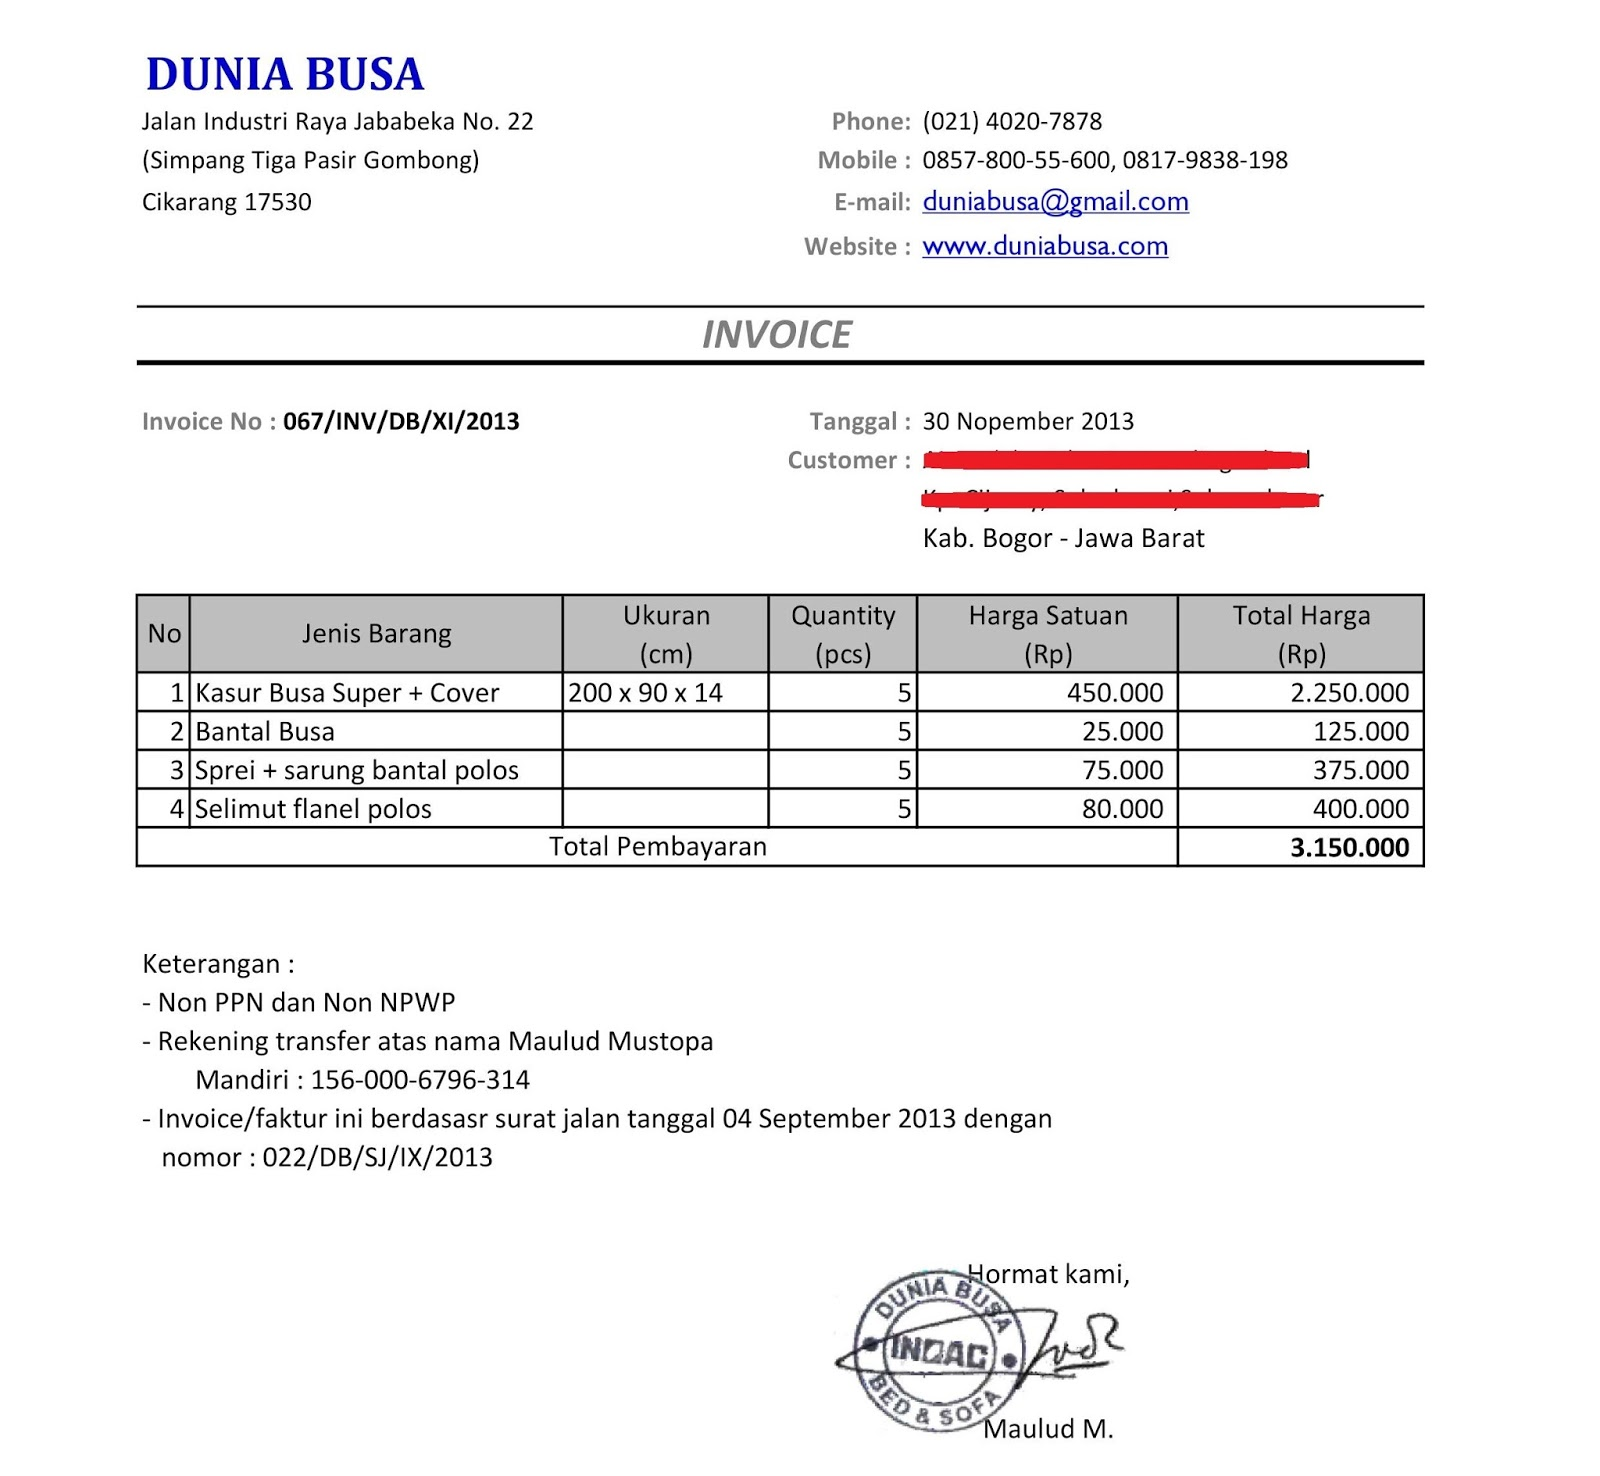 Centralasianshepherdus  Unique Free Invoice Online  Create Invoice Online  Invoice Template  With Remarkable Contoh Format Invoice Atau Surat Tagihan  Brankas Arsip  Free Invoice Online With Nice Invoice Pages Template Also Hotel Invoice Sample In Addition Invoice For Consulting And Invoice Sample Download As Well As Monthly Invoices Additionally Invoice Android From Sklepco With Centralasianshepherdus  Remarkable Free Invoice Online  Create Invoice Online  Invoice Template  With Nice Contoh Format Invoice Atau Surat Tagihan  Brankas Arsip  Free Invoice Online And Unique Invoice Pages Template Also Hotel Invoice Sample In Addition Invoice For Consulting From Sklepco